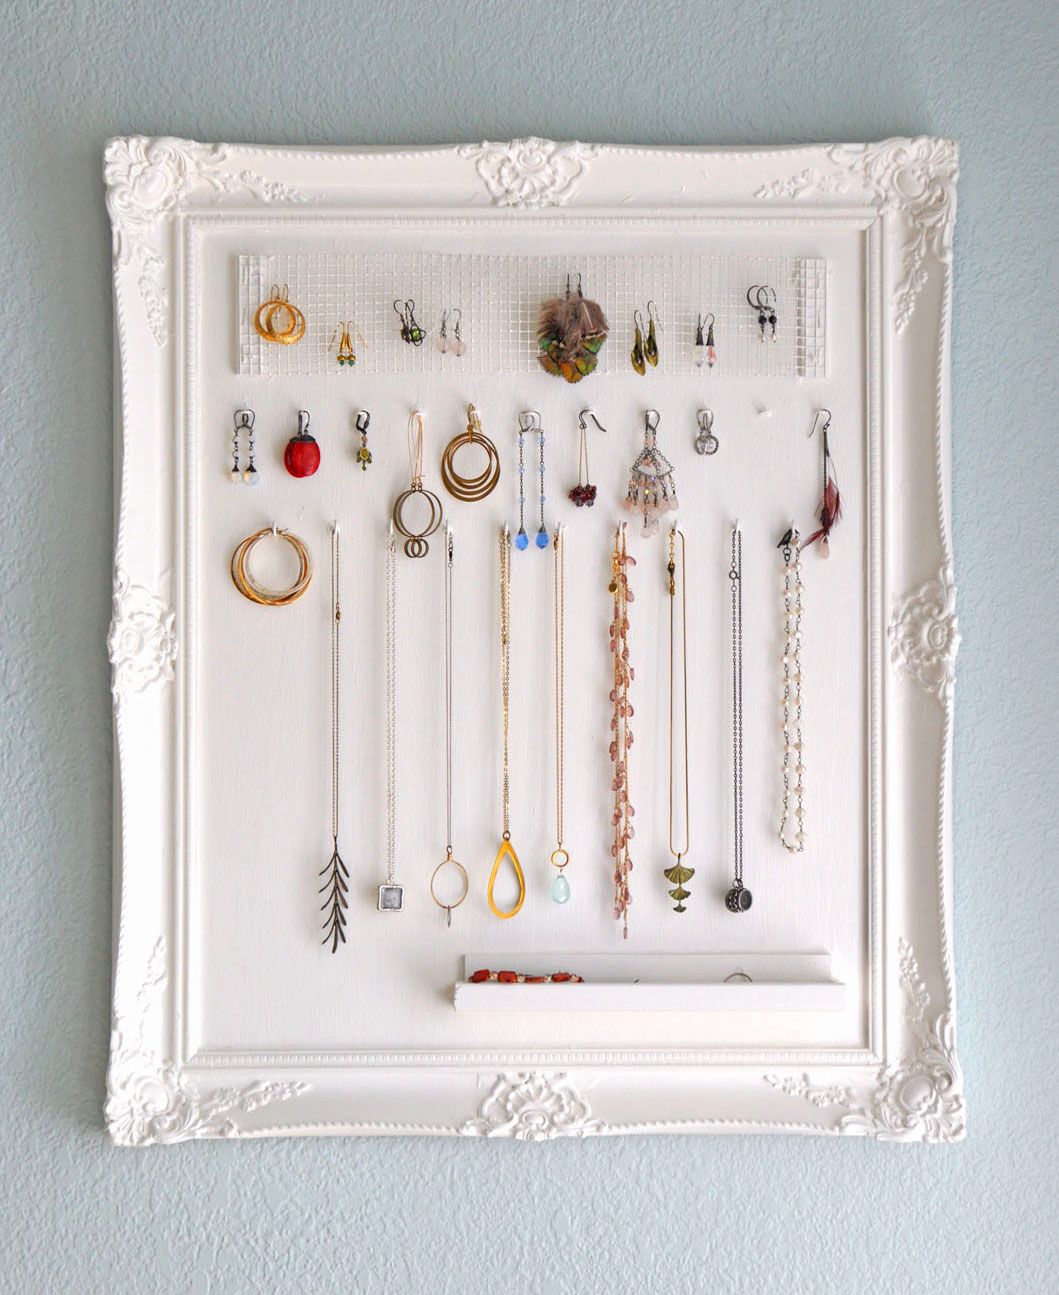 do-it-yourself jewelry storage -